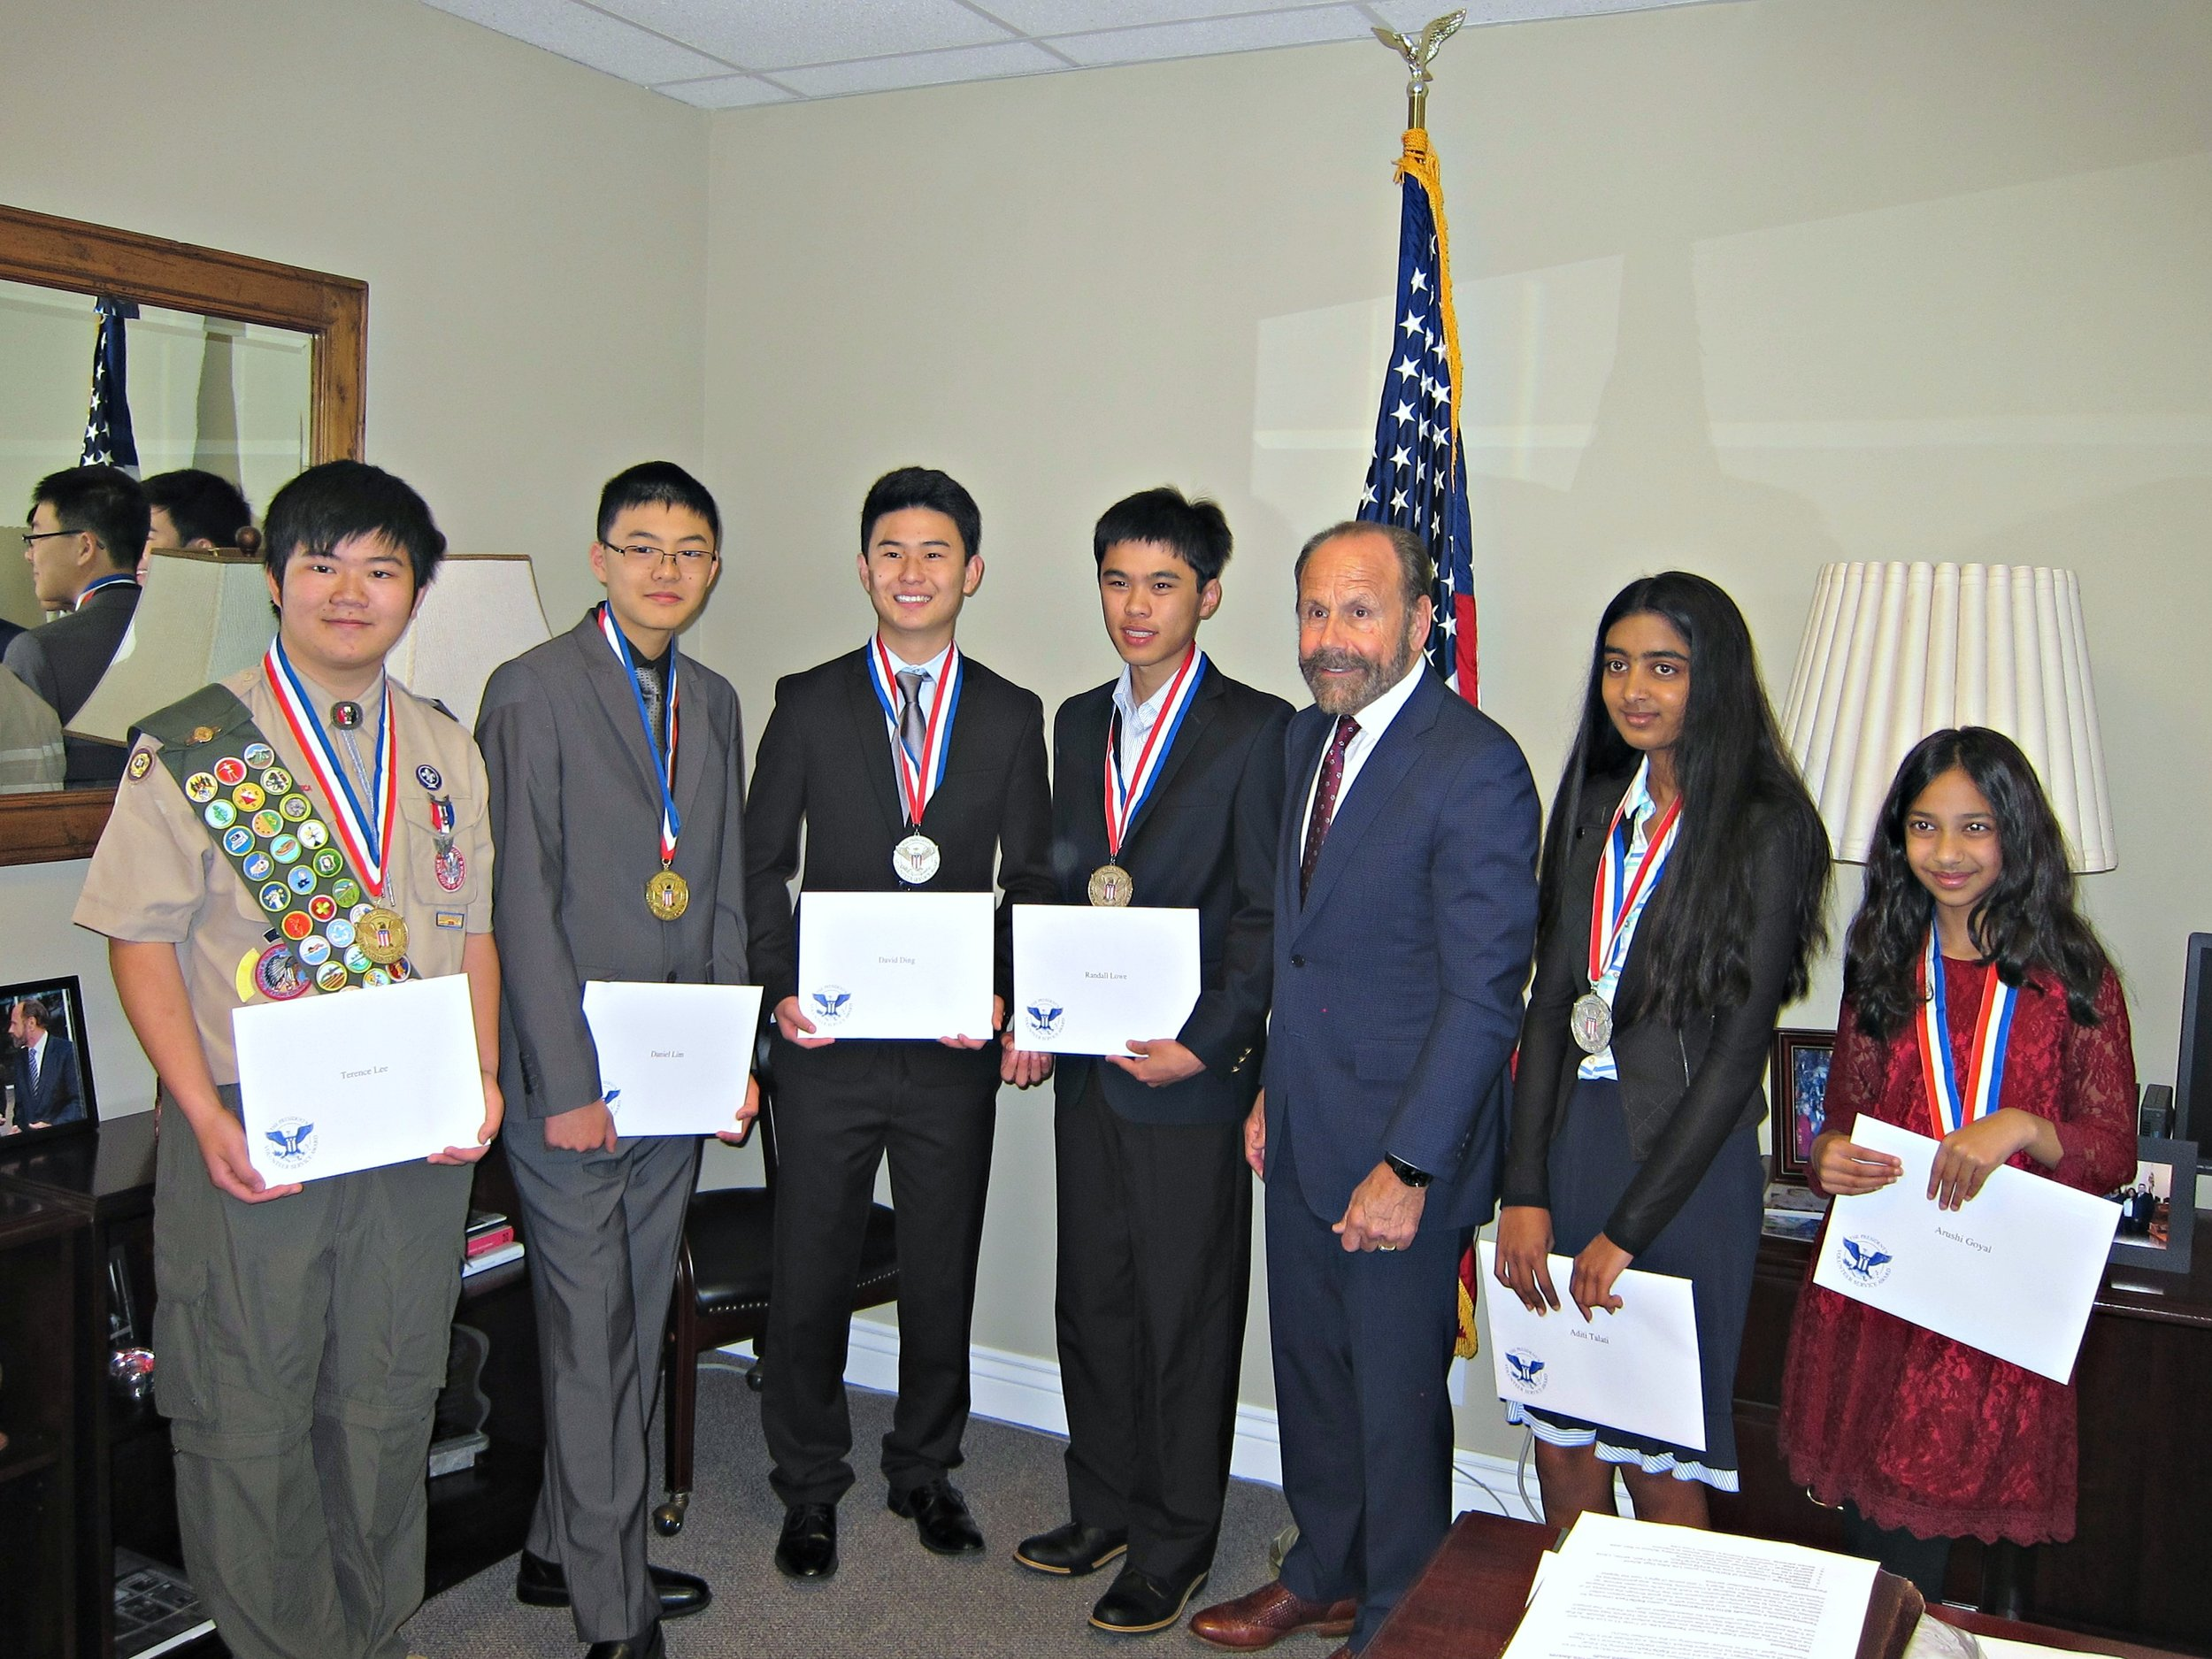 Terence Lee, Daniel Lim, David Ding, Randall Lowe, Senator Jerry Hill, Aditi Talati, Arushi Goyal (left to right)